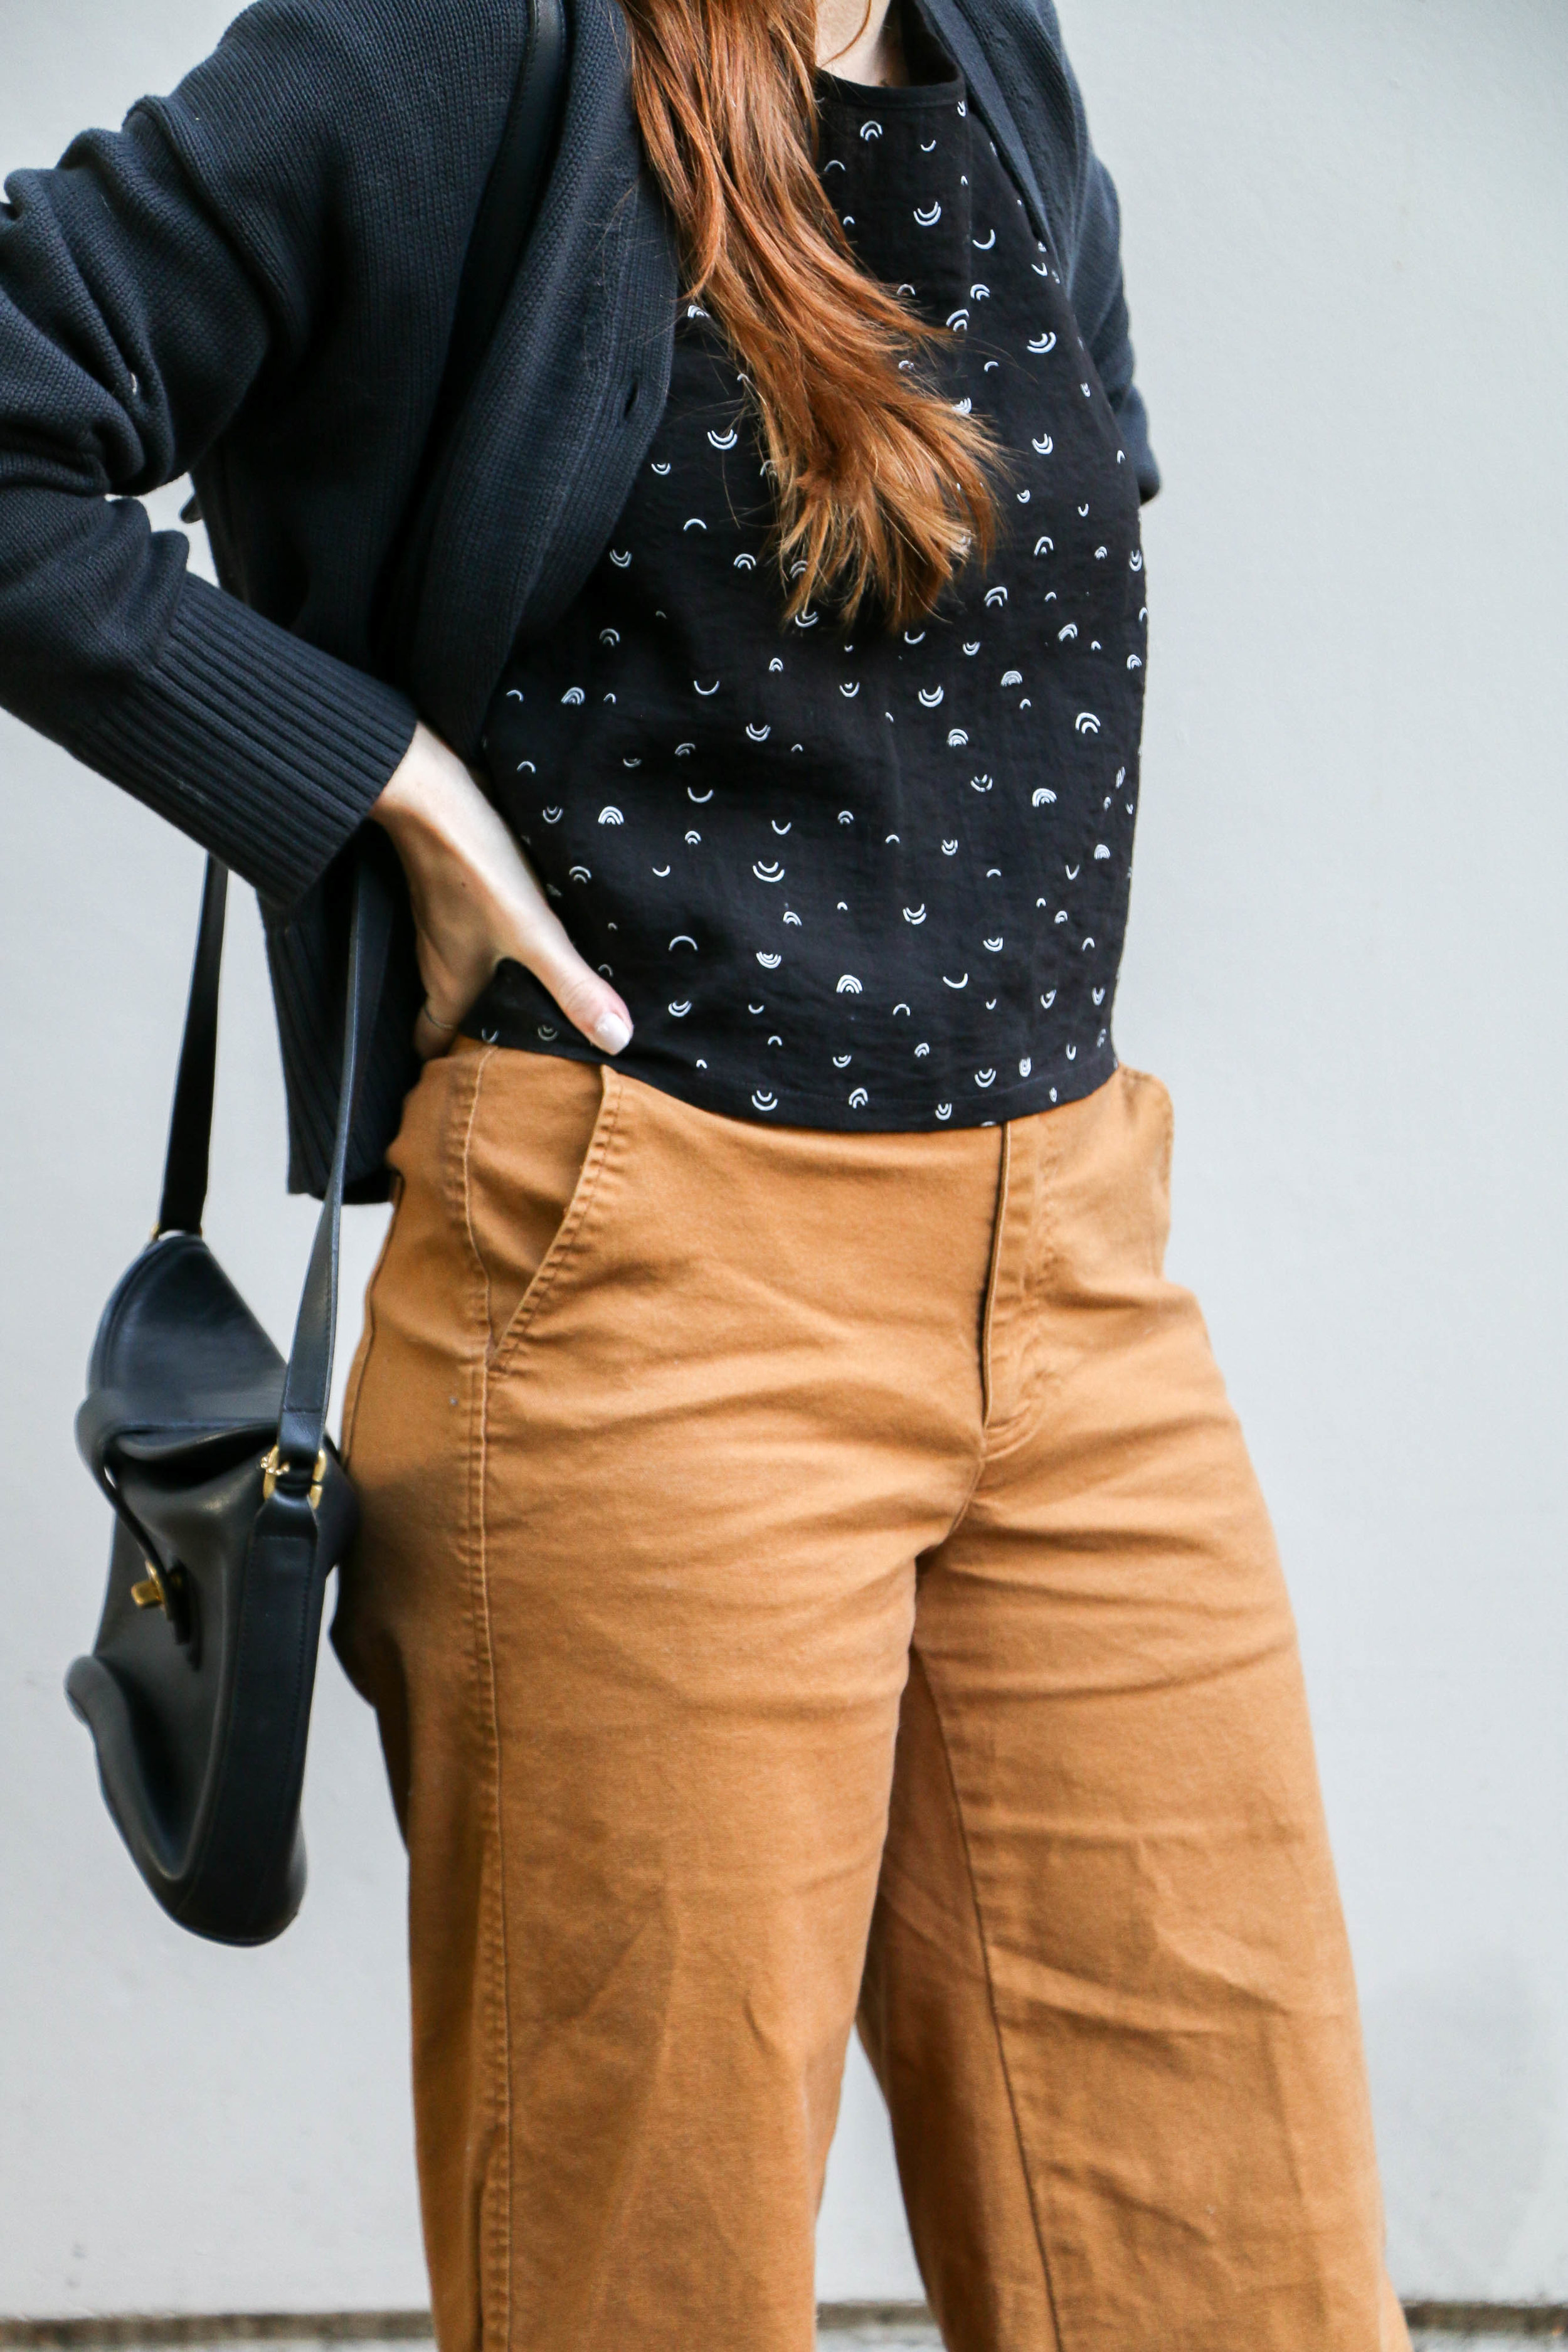 the-thoughtful-closet_fall-10x10_challenge_outfit-3_-19.jpg